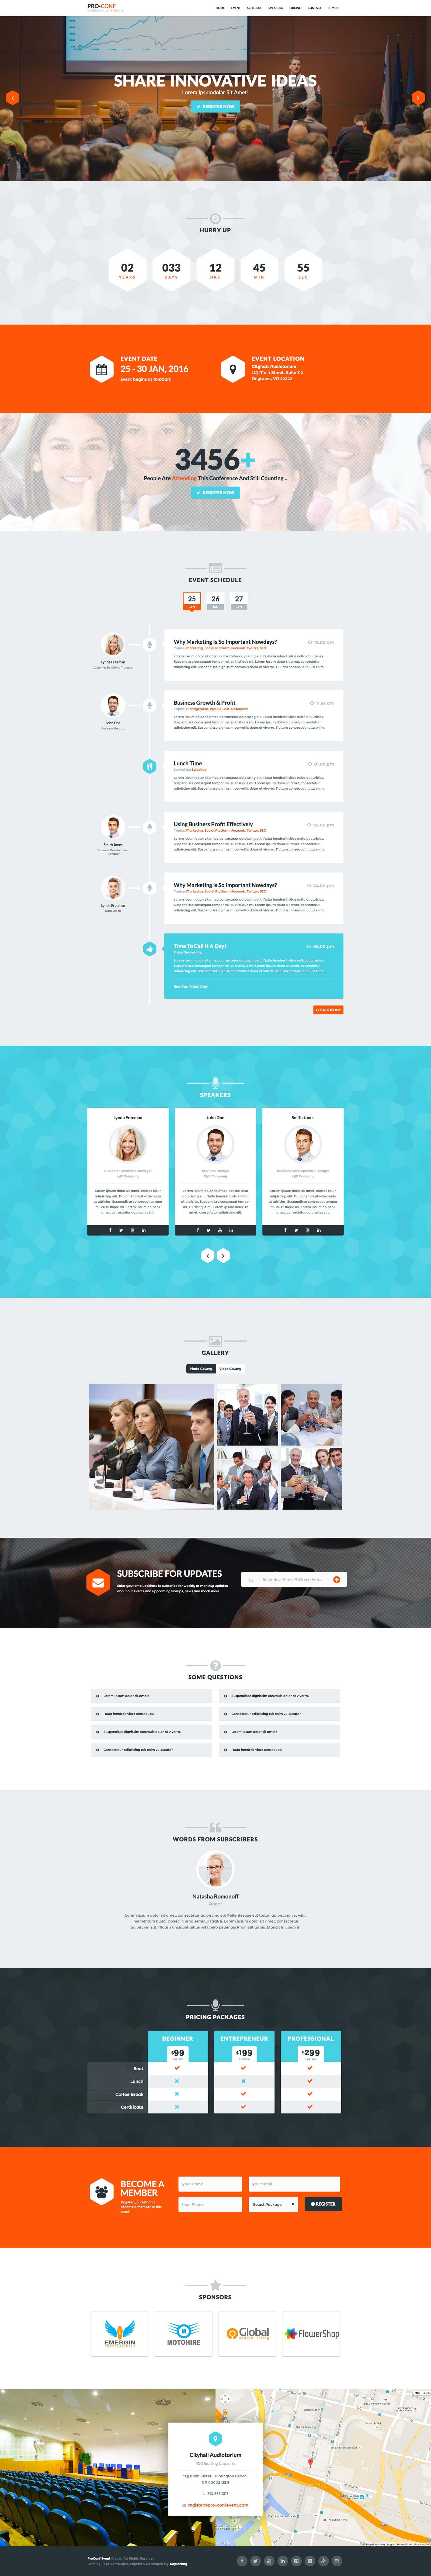 Proconf event landing page by saptarang